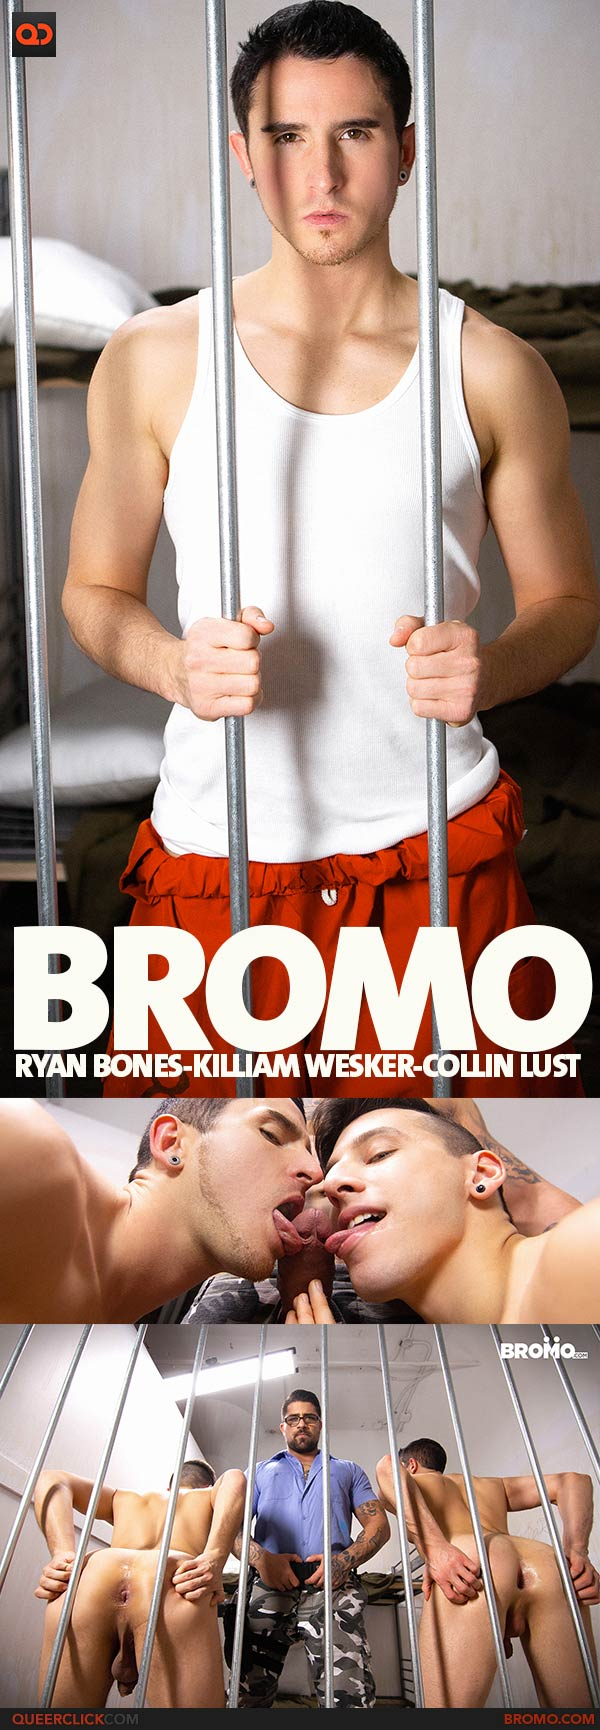 Bromo: Ryan Bones, Killiam Wesker and Collin Lust